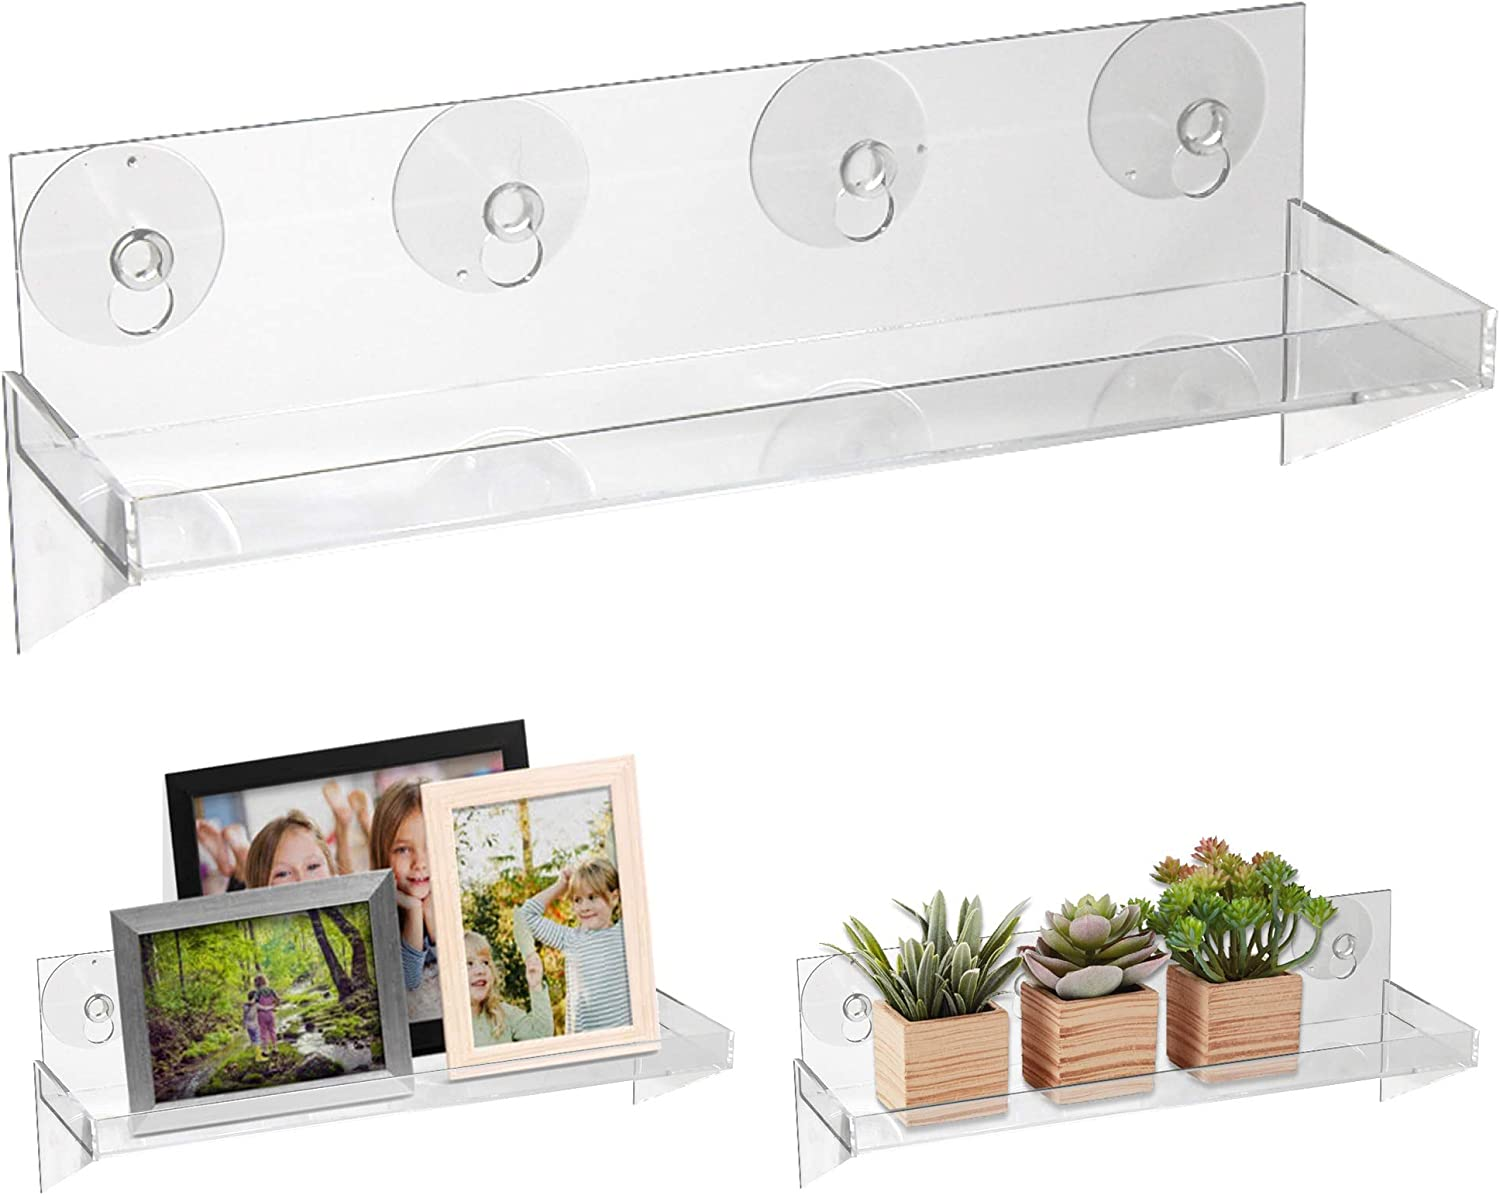 Urban Leaf - Suction Cup Shelf for Plants Window Bathroom or Kitchen | Live Plant Shelves for Indoor Garden | Window Sill, Shower, Decorations or Ledge Extender | Large 12 x 4